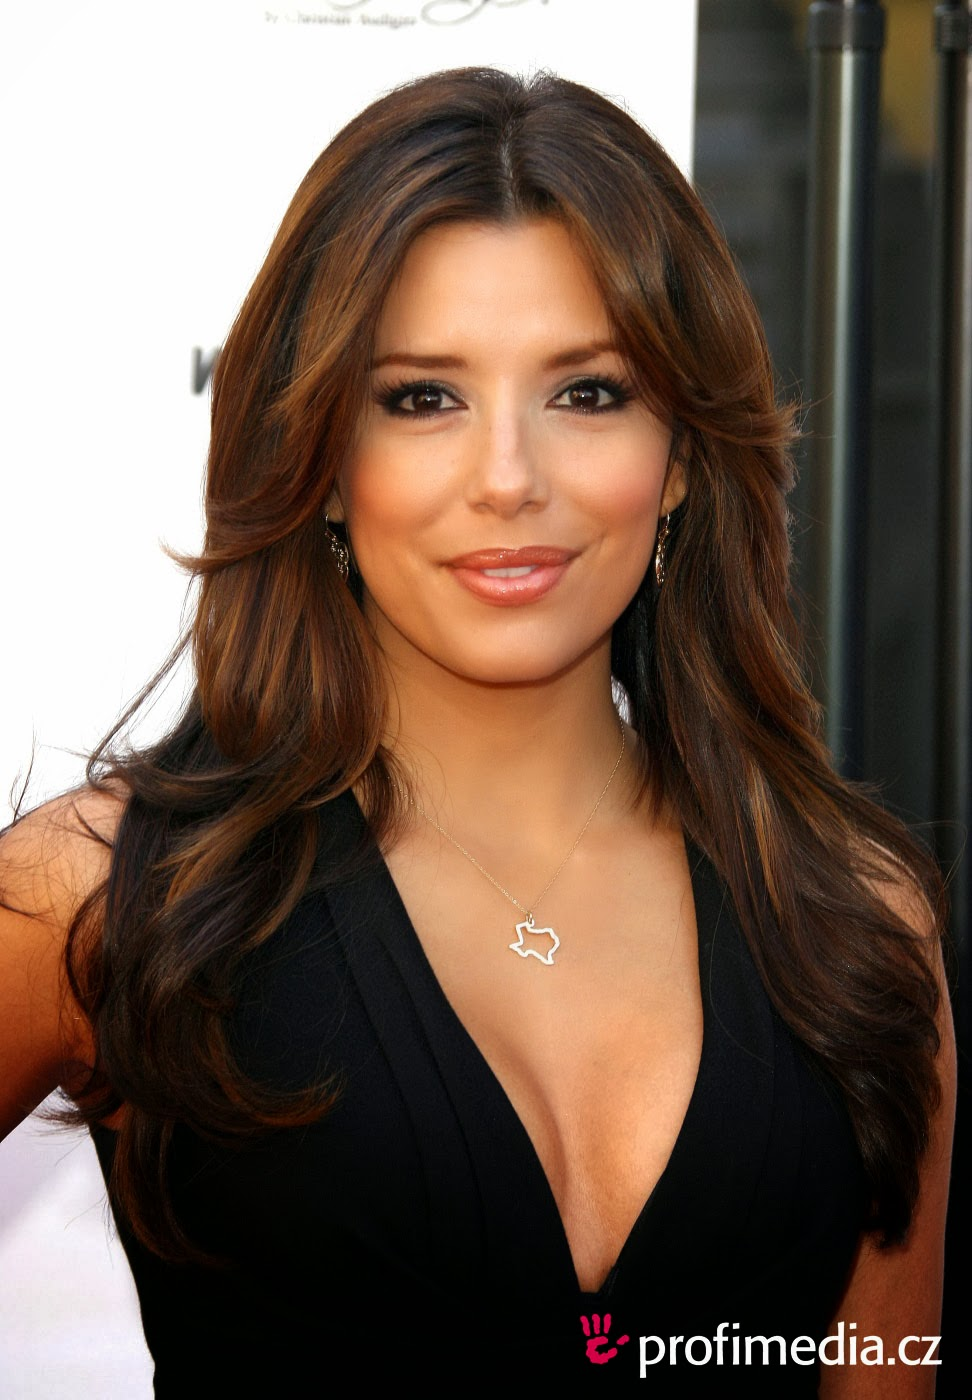 Sports Scandal: Eva Longoria's Woman of the Year